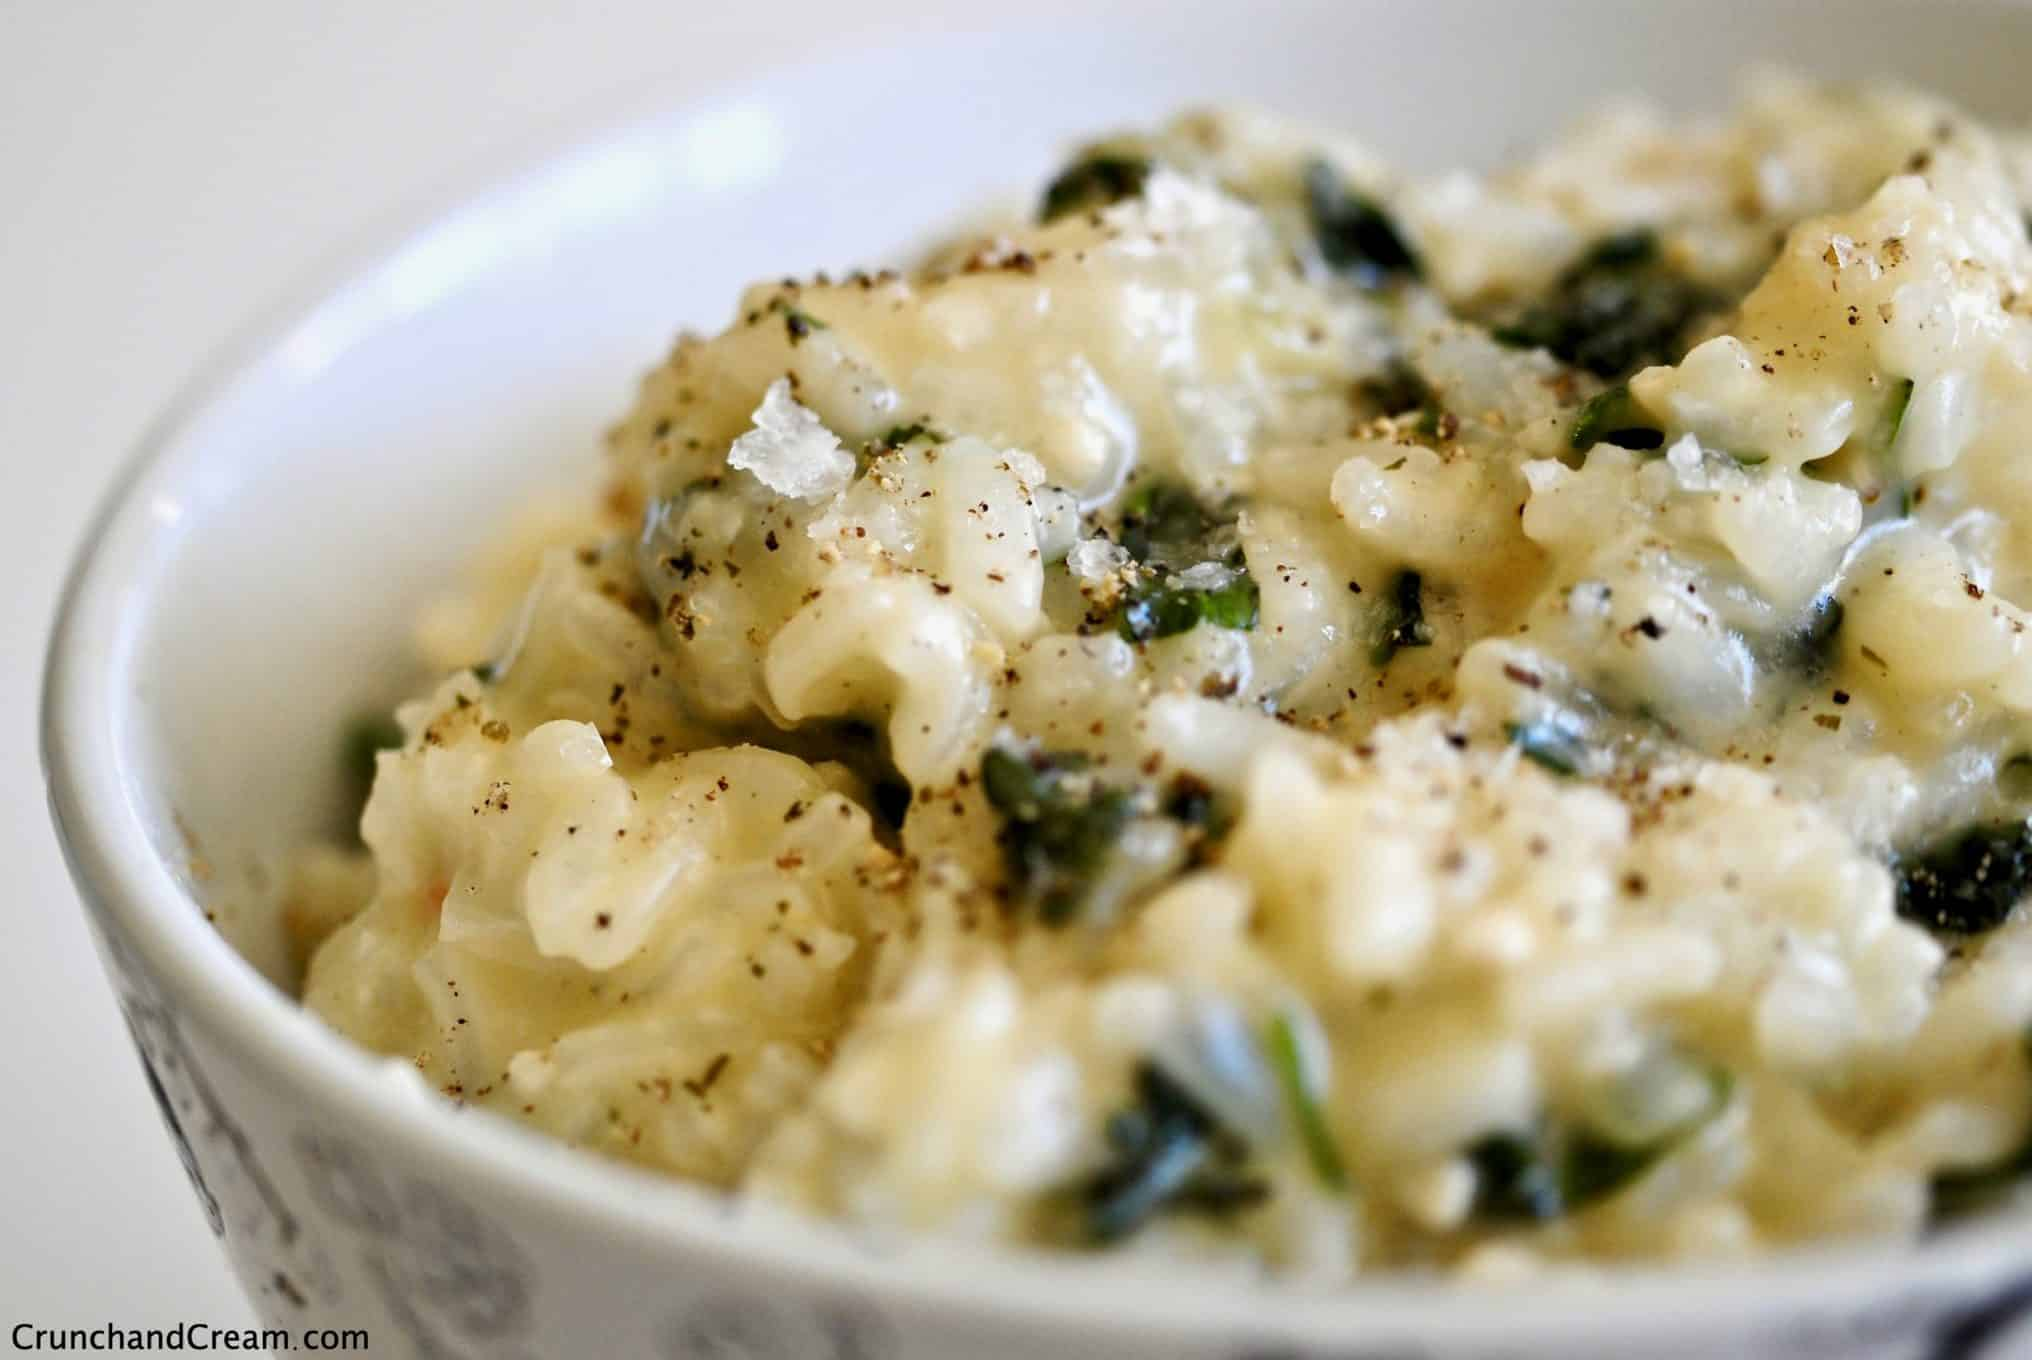 A close-up of a bowl full of creamy risotto with chopped green herbs in.